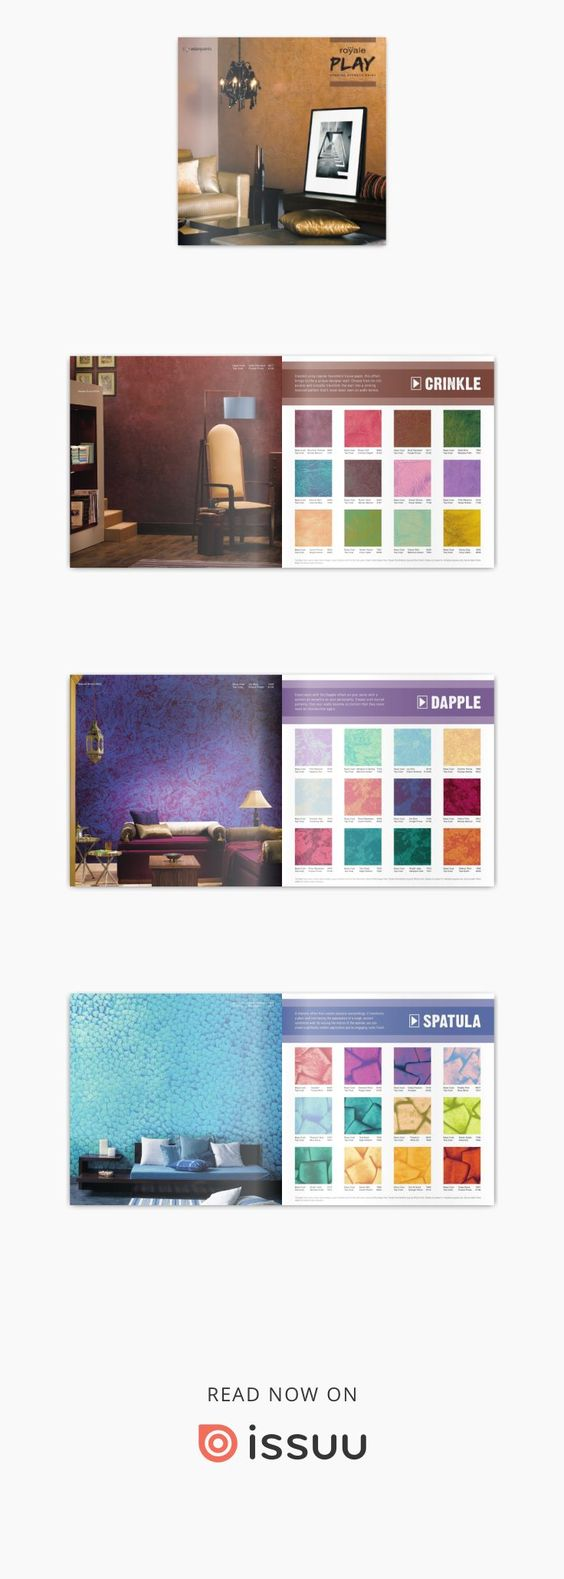 Asian Paints Srilanka Royale Play And Metallics Decor Book Asian Paints Asian Paint Design Asian Paints Royale